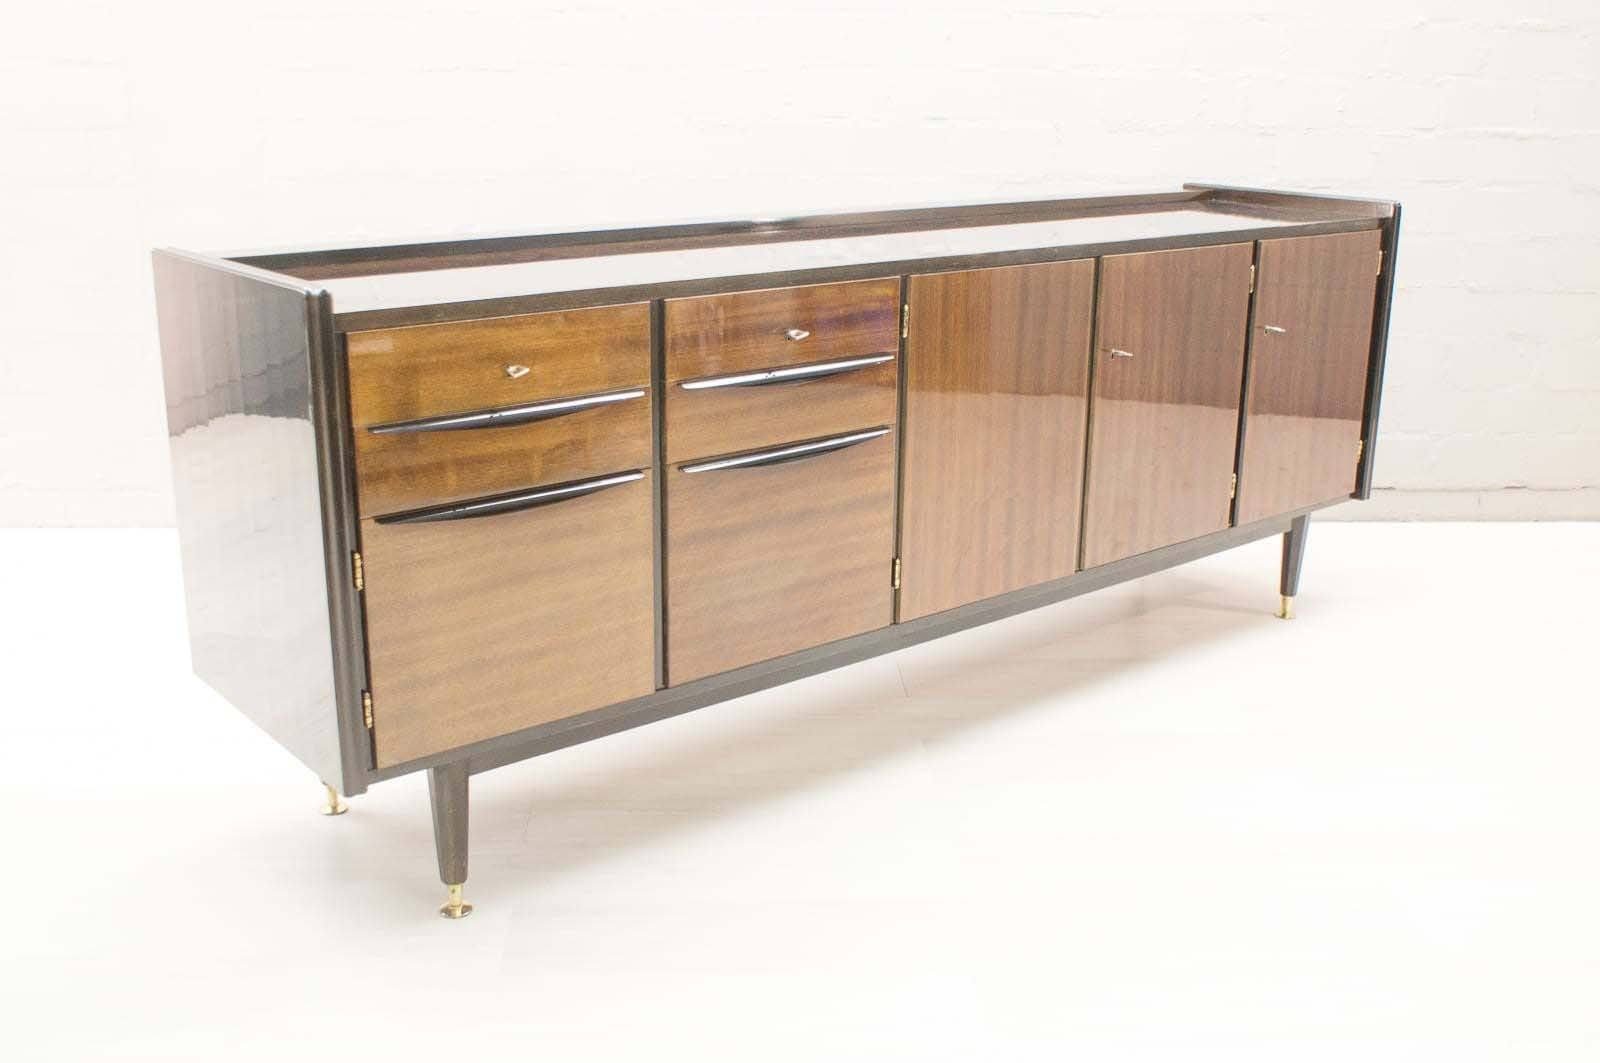 gro es mid century sideboard mit beleuchteter bar bei pamono kaufen. Black Bedroom Furniture Sets. Home Design Ideas